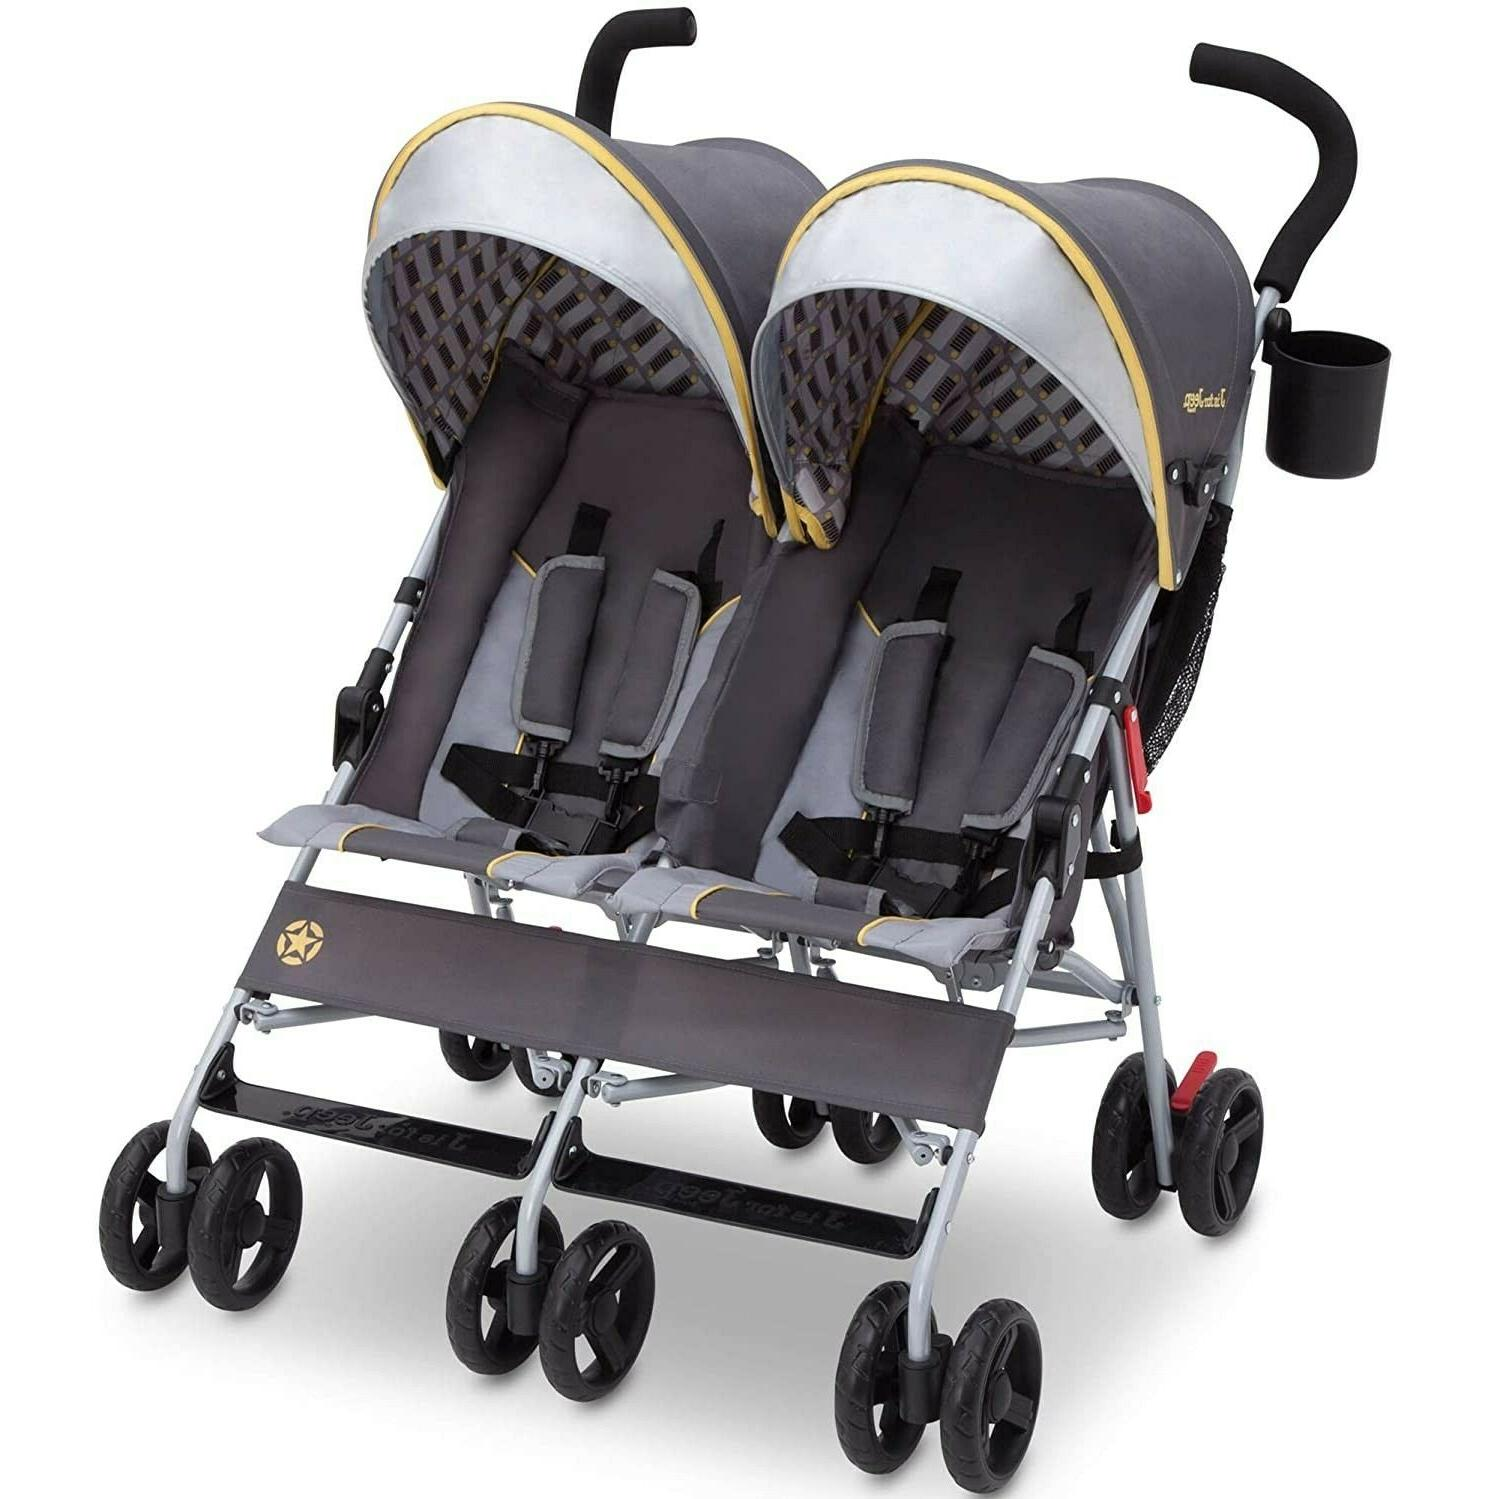 Foldable Twin Double Stroller lightweight Umbrella Stroller